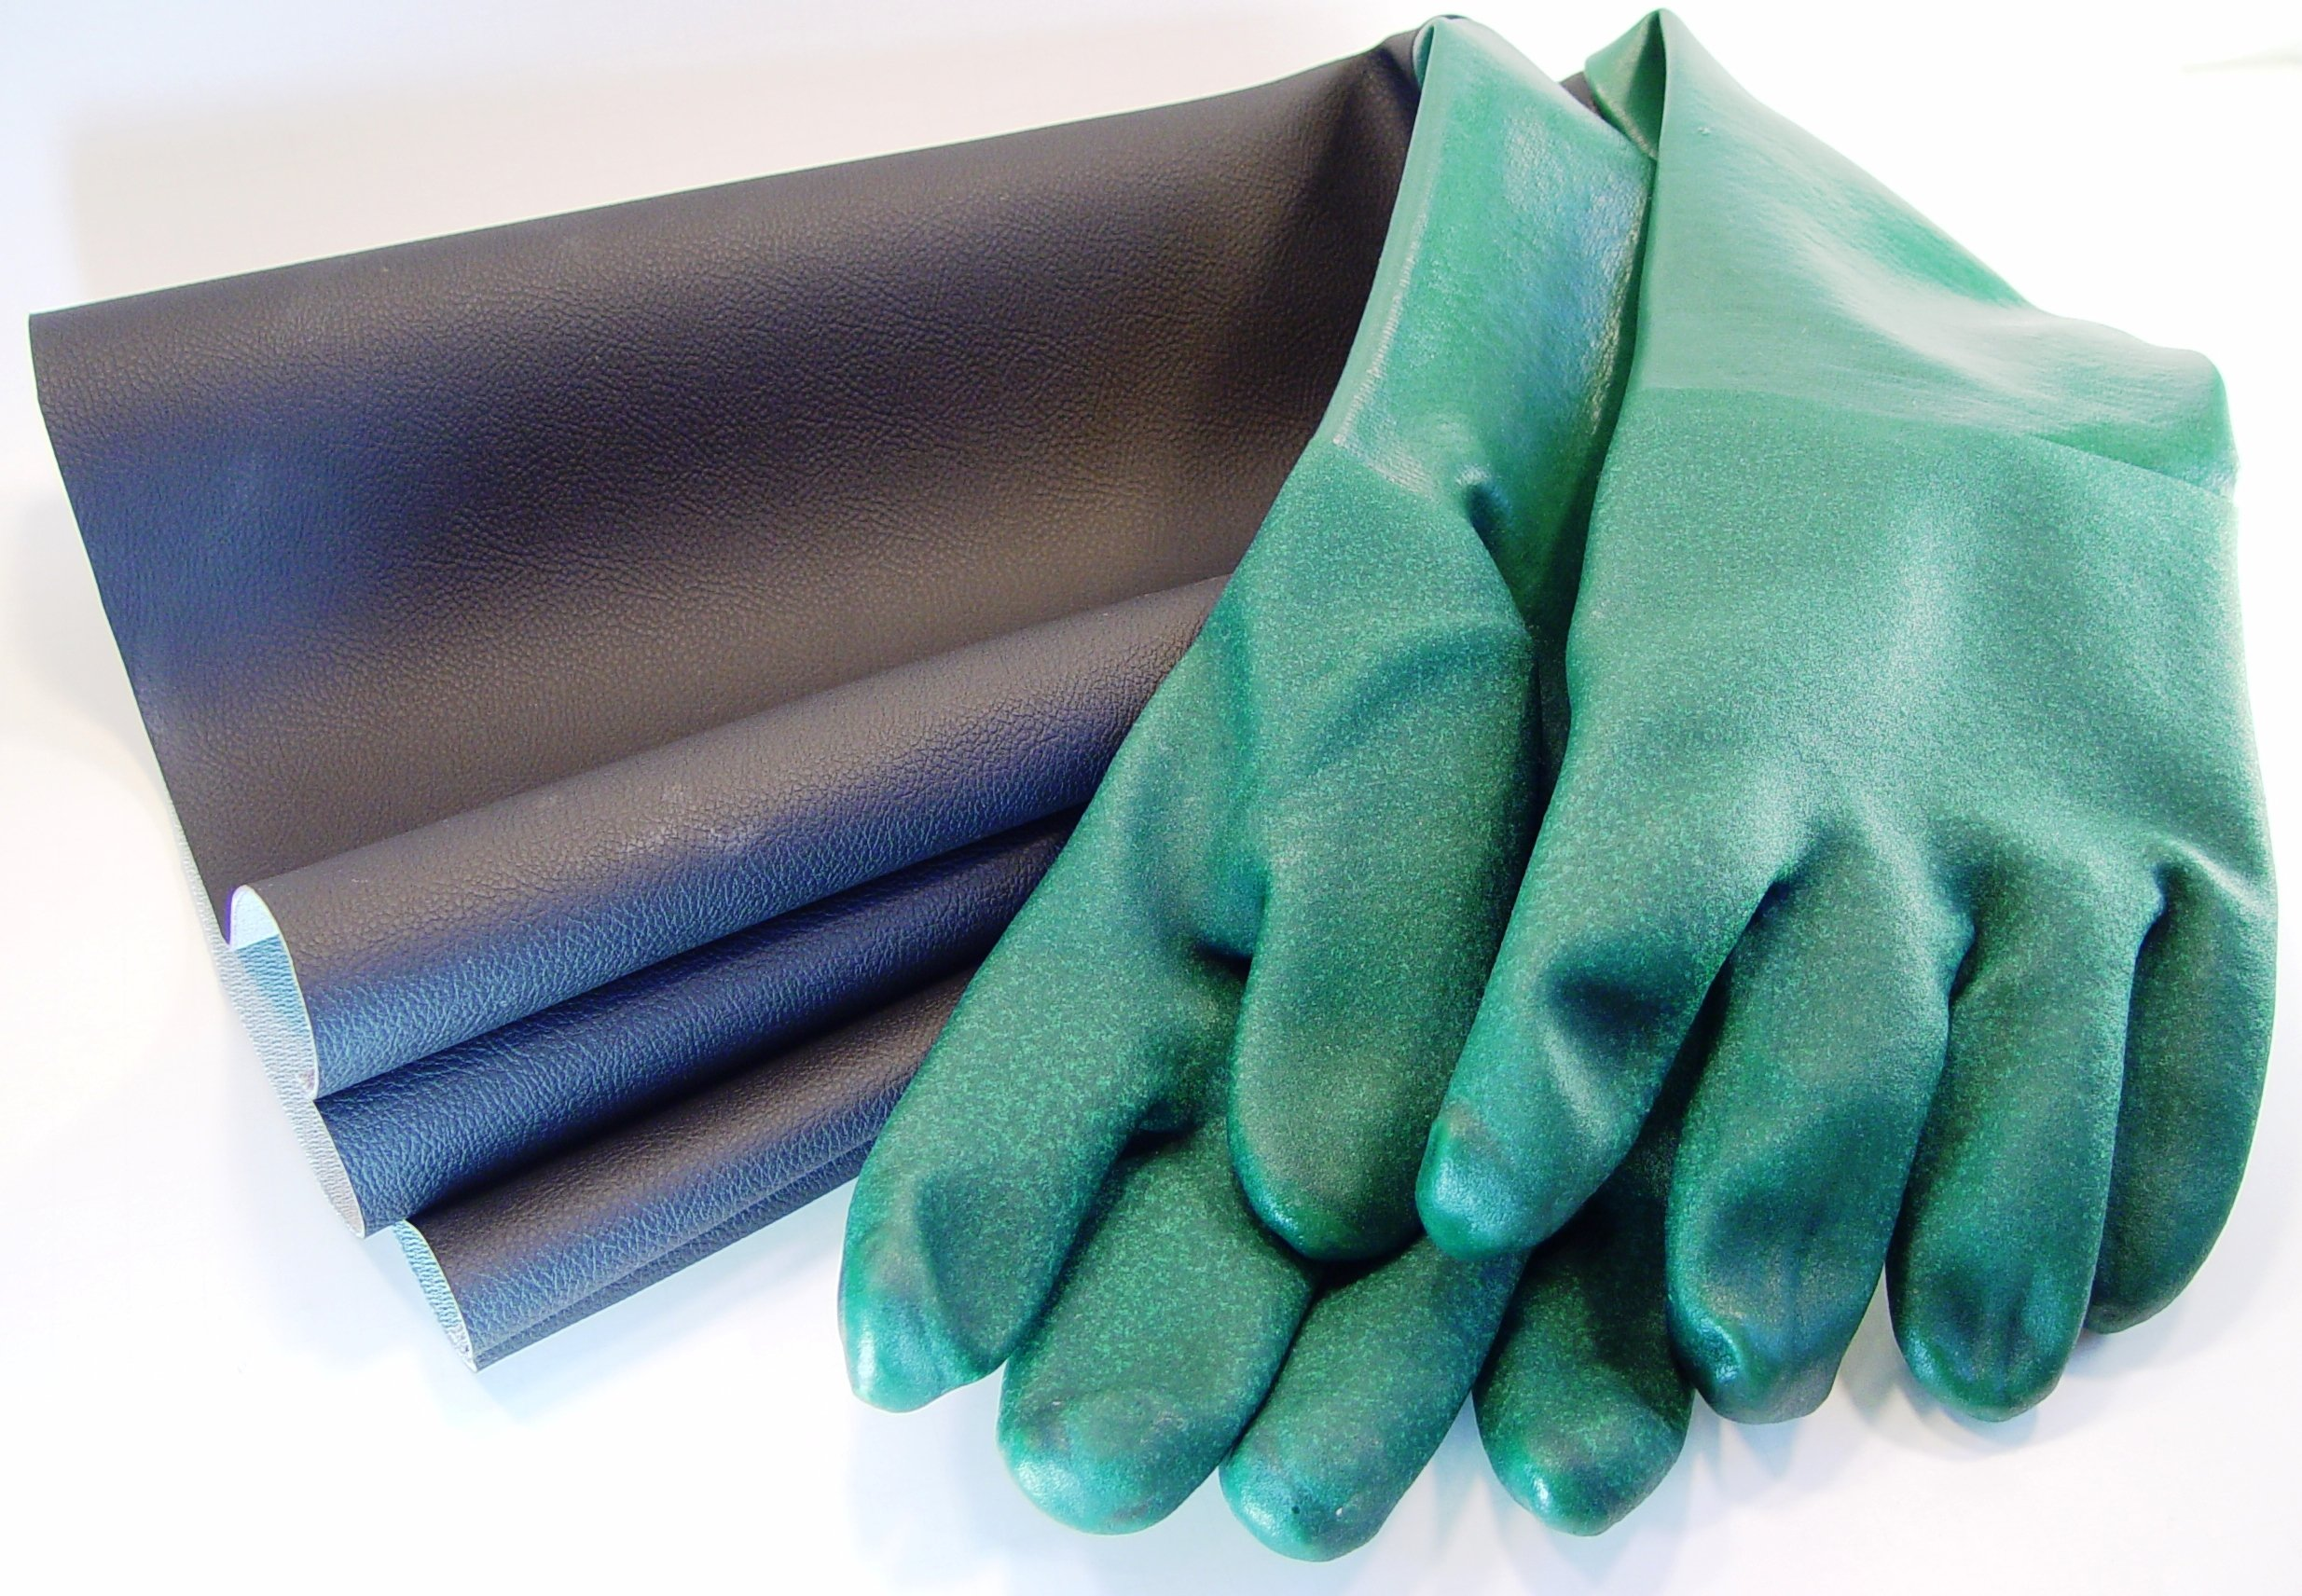 GLOVES for Sandblaster Blast Cabinet - 1 Pair - 24'' x 7-1/4'' - SIZE: EXTRA-LARGE - Made in USA by Tacoma Company by Tacoma Company